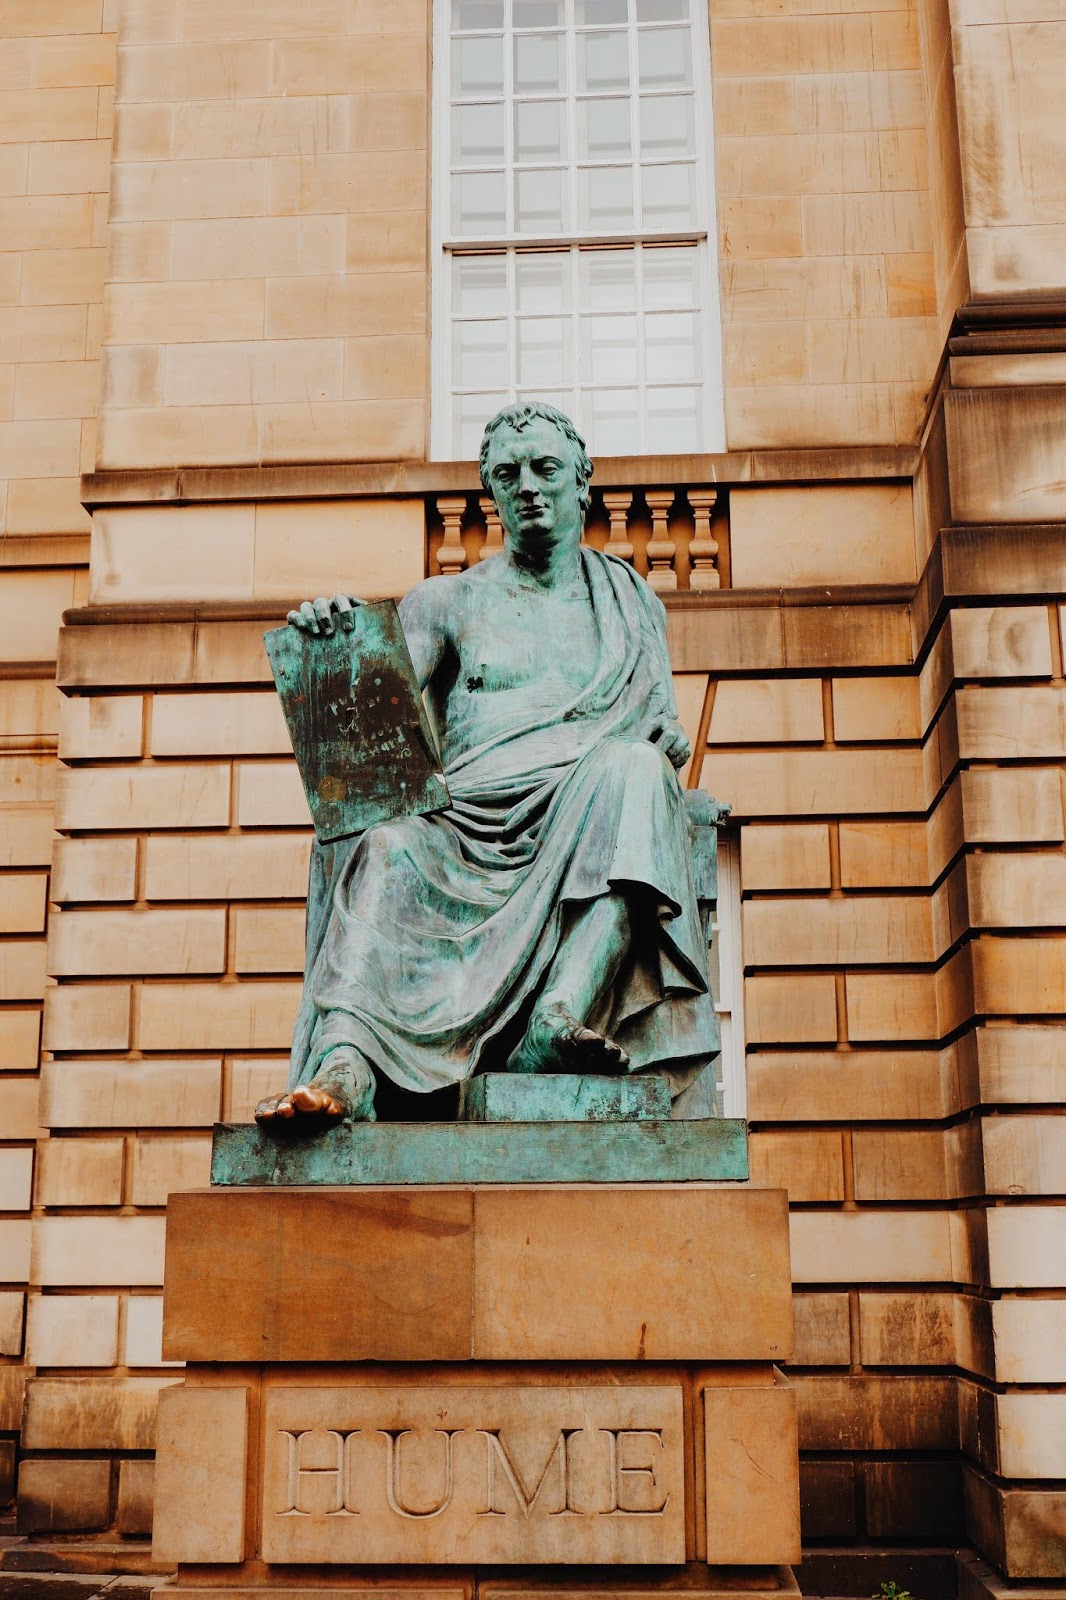 David Hume Statue on the Royal Mile